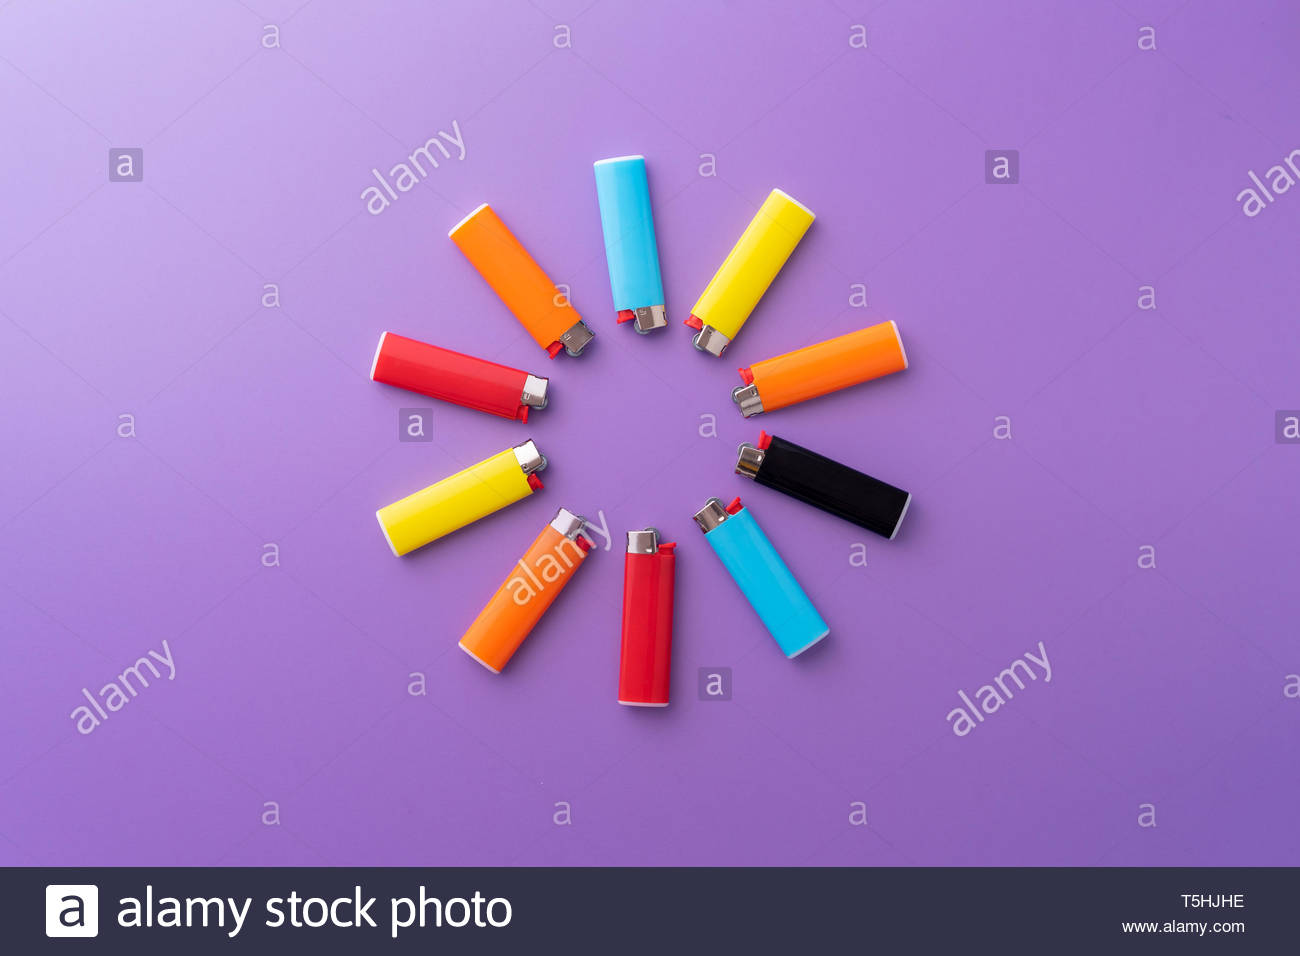 Multiple colorful lighters organized in a circle over purple 1300x956